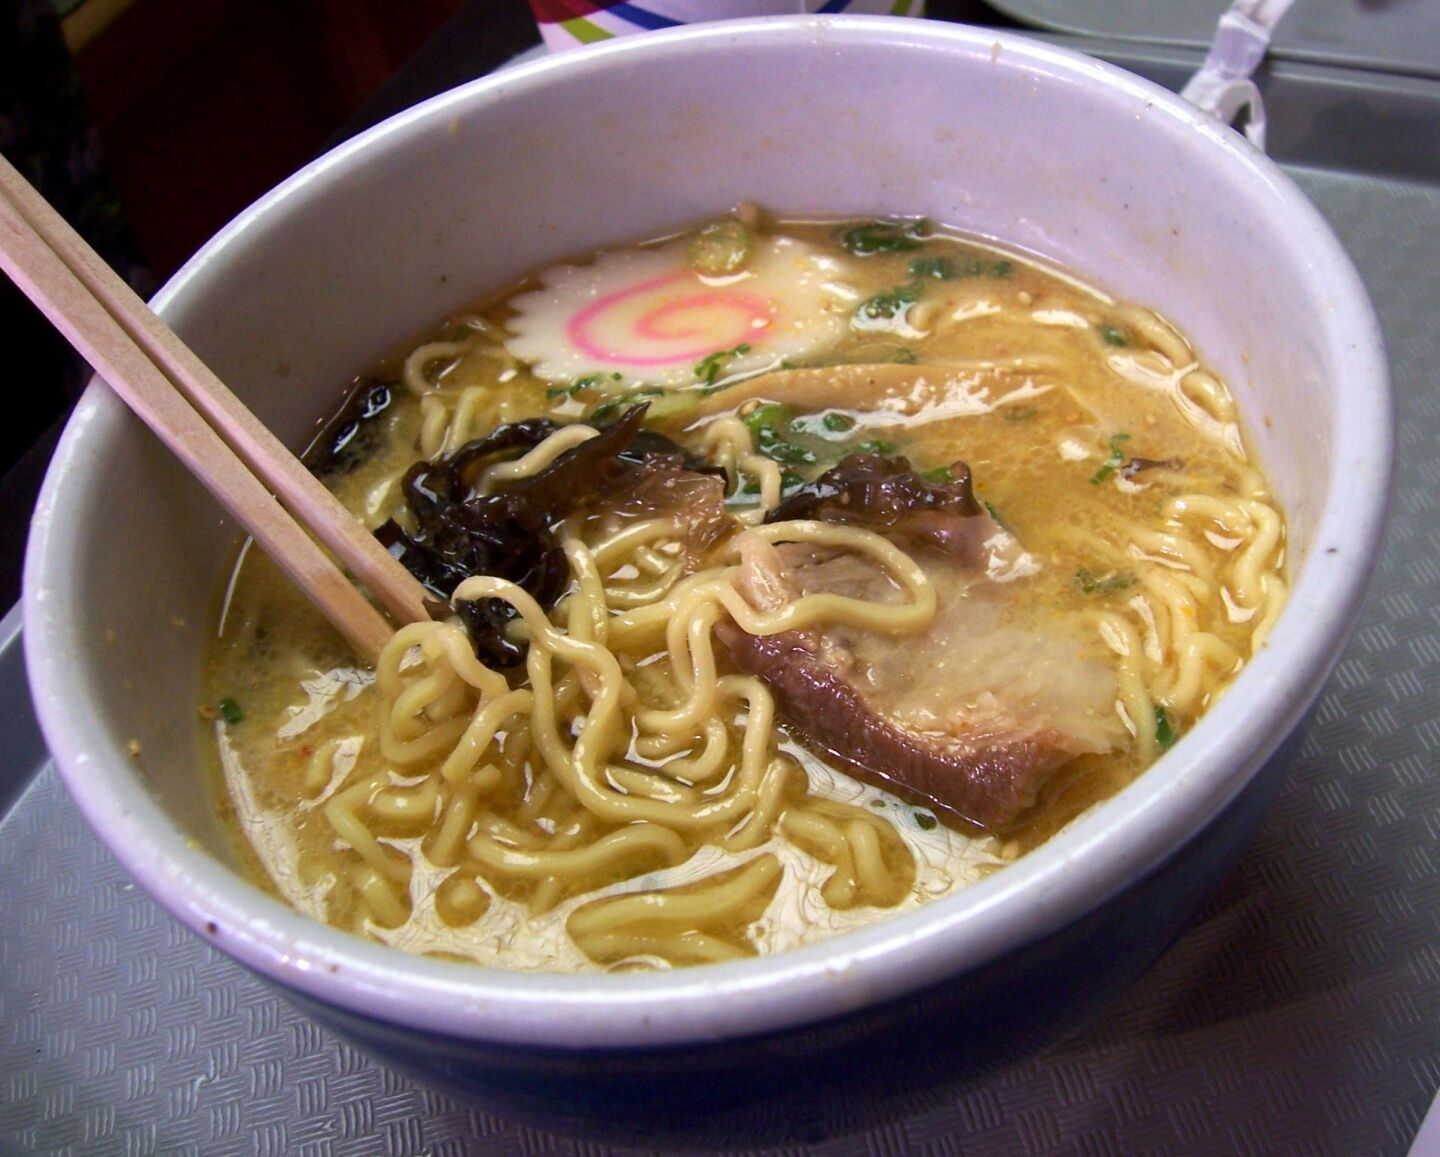 ramen, another soup too exotic for me to make at home